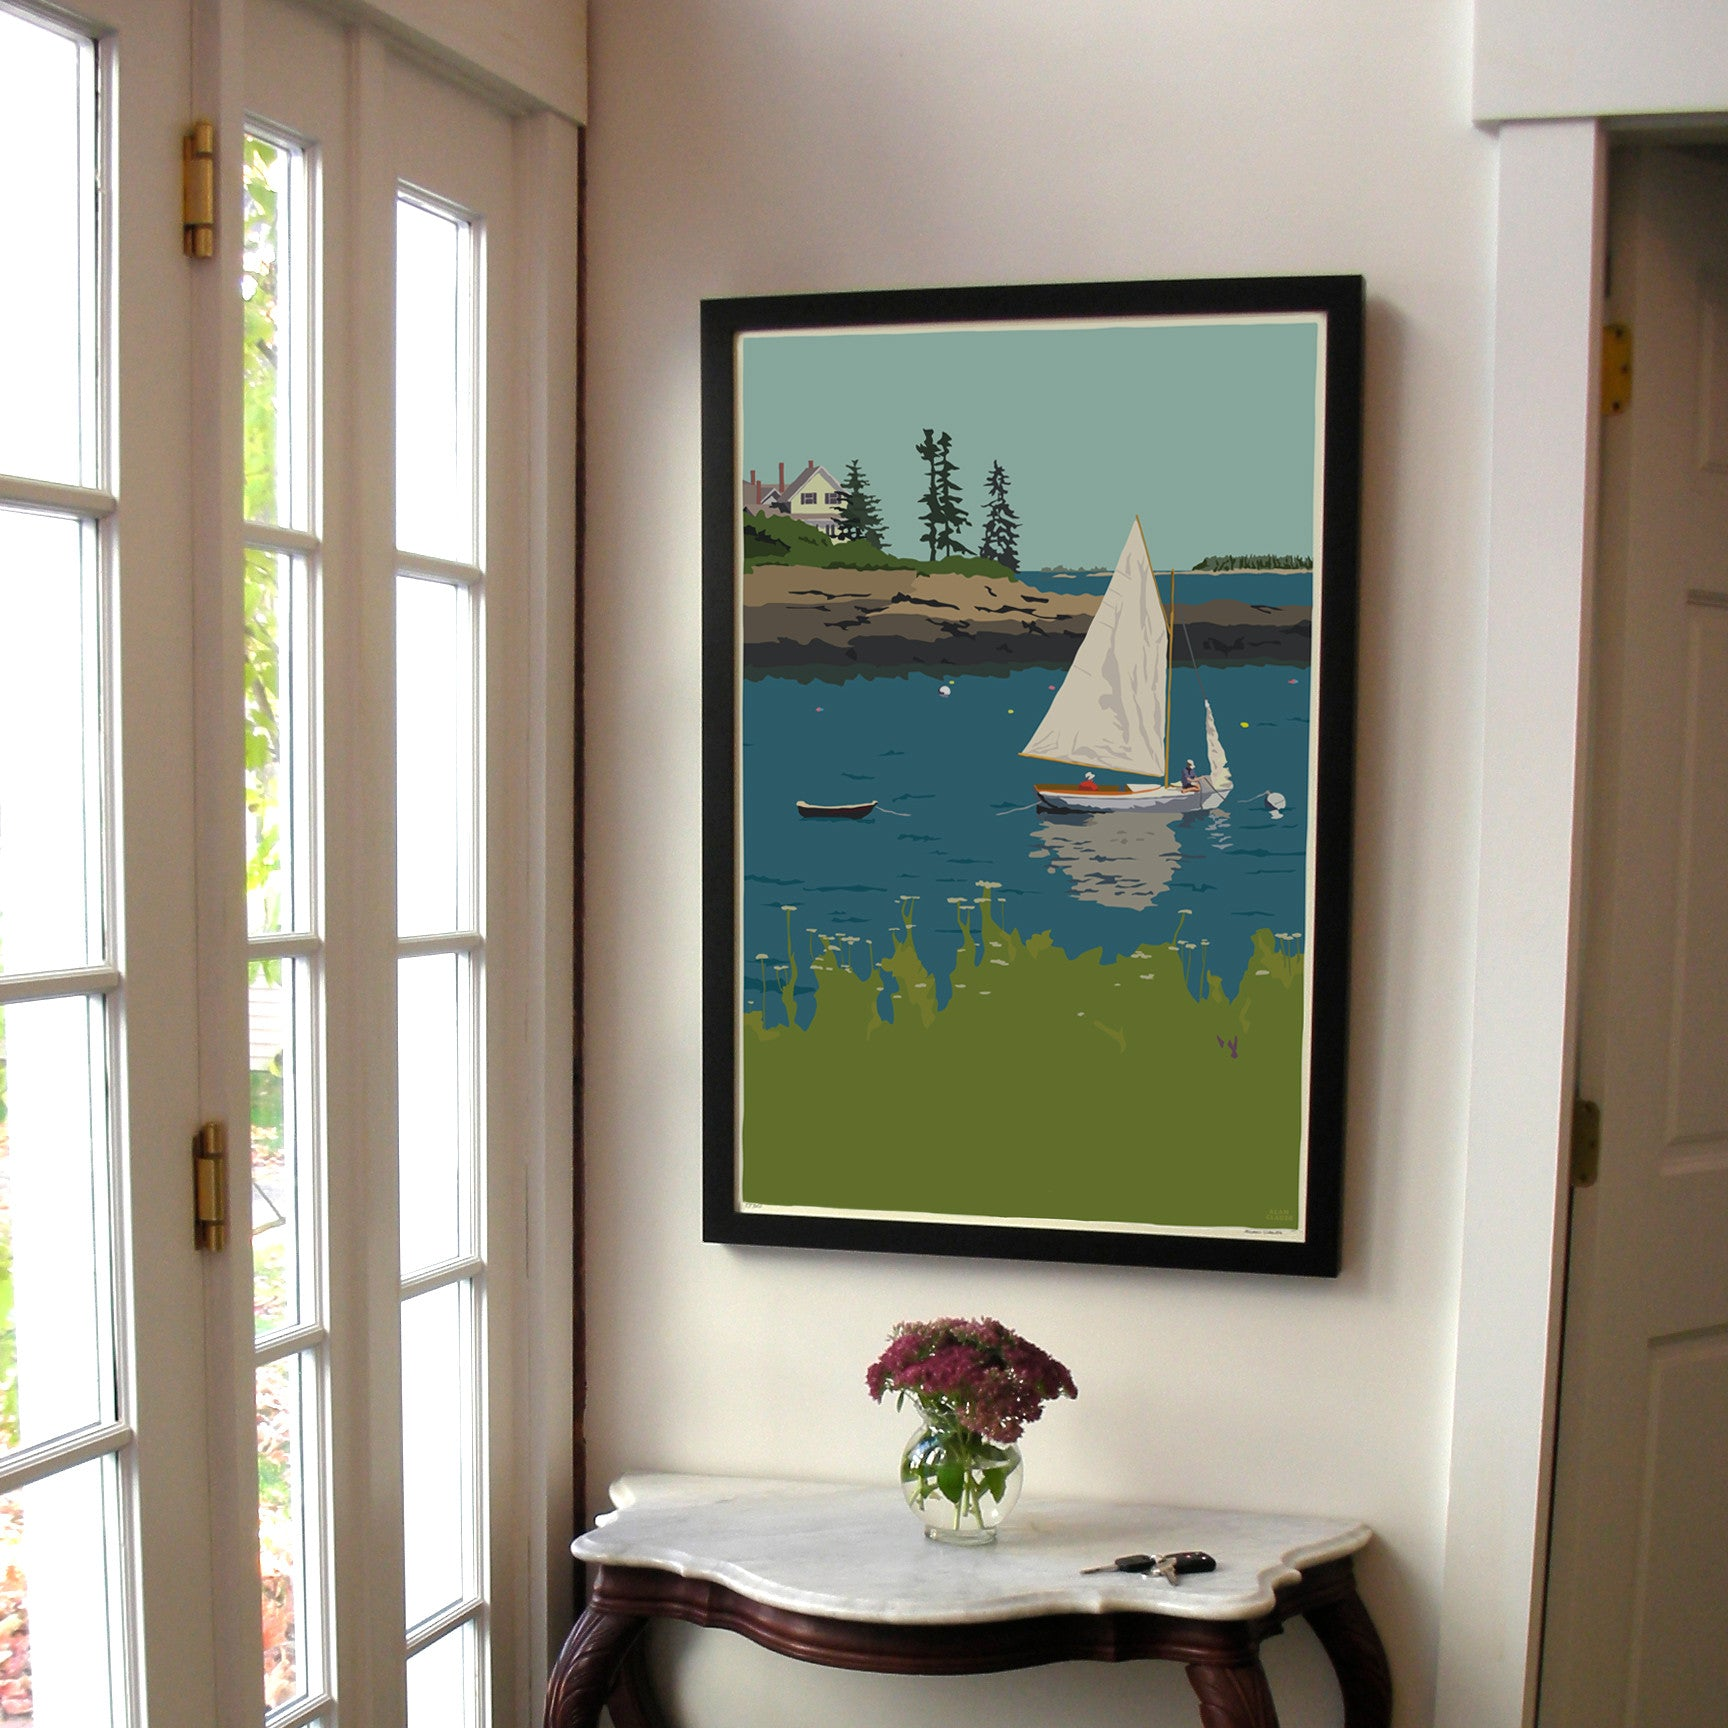 "Sailing Long Cove Art Print 24"" x 36"" Framed Wall Poster - Maine"